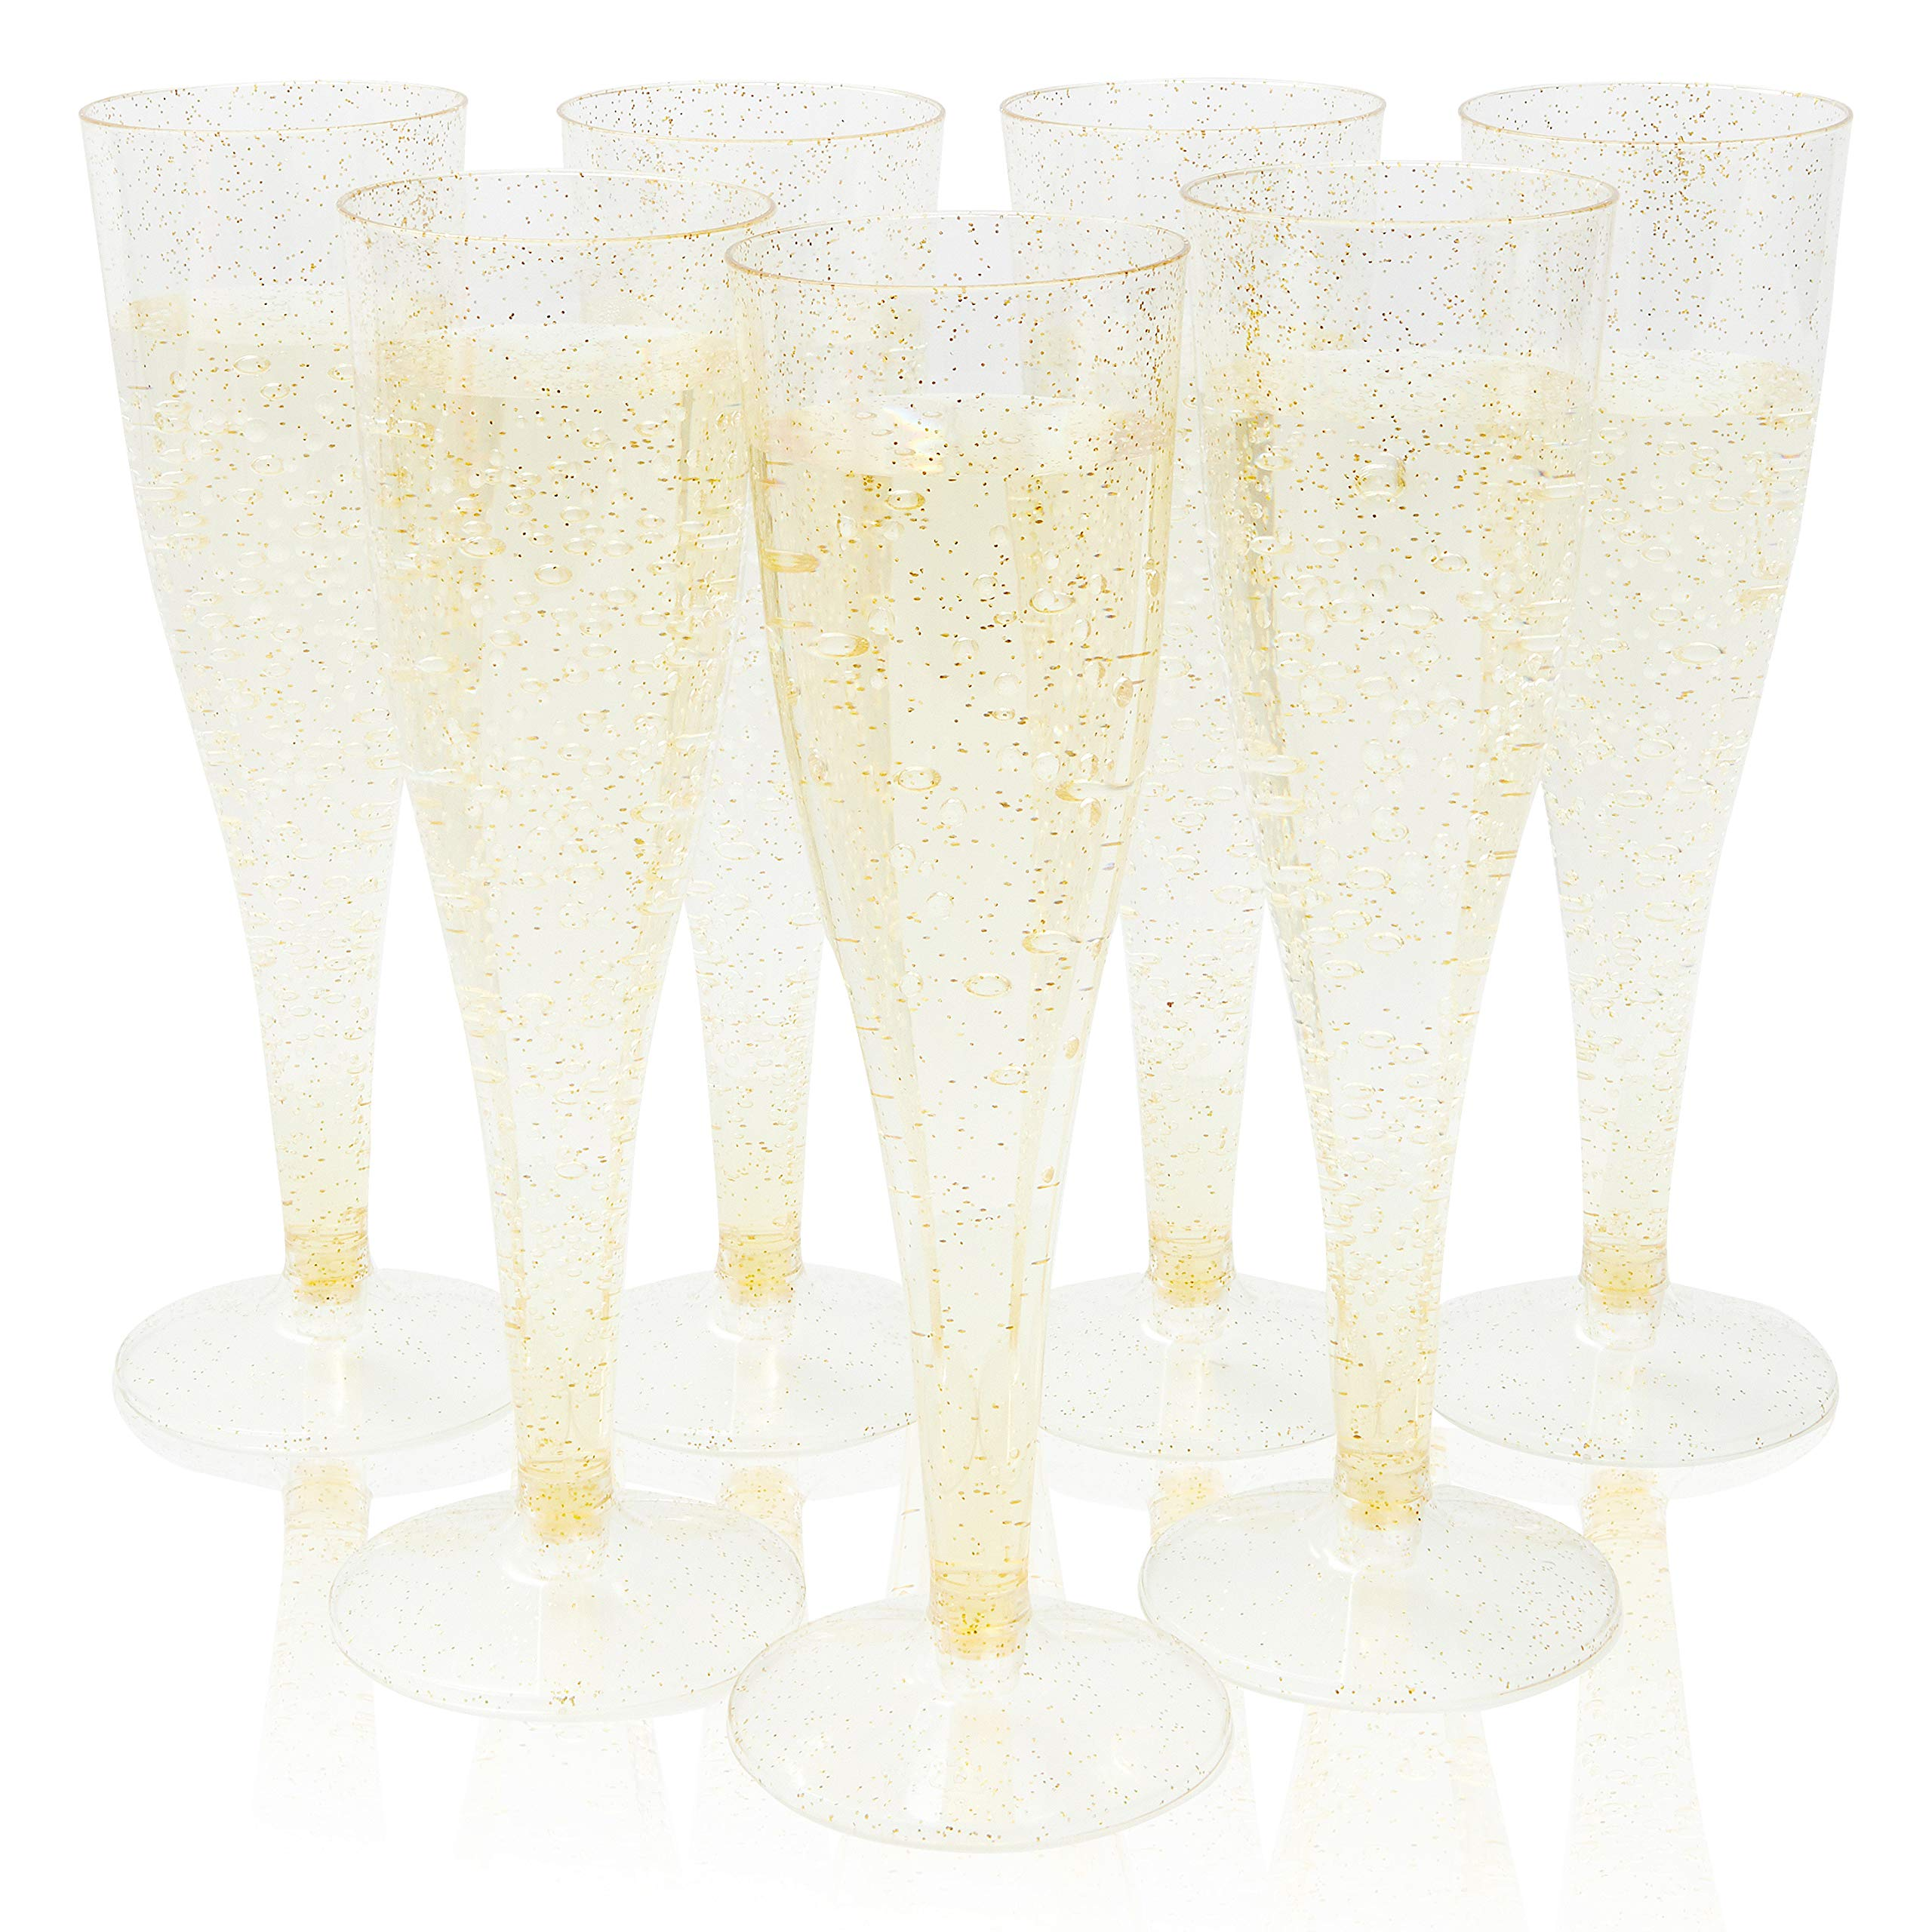 Plastic Champagne Flutes - 100-Pack 4.4oz Gold Glitter Disposable Champagne Glasses, Gold Plastic Flutes for Wedding, Bachelorette Party, Bridal Shower, Birthday Party Supplies, 4.4 Ounces by Juvale